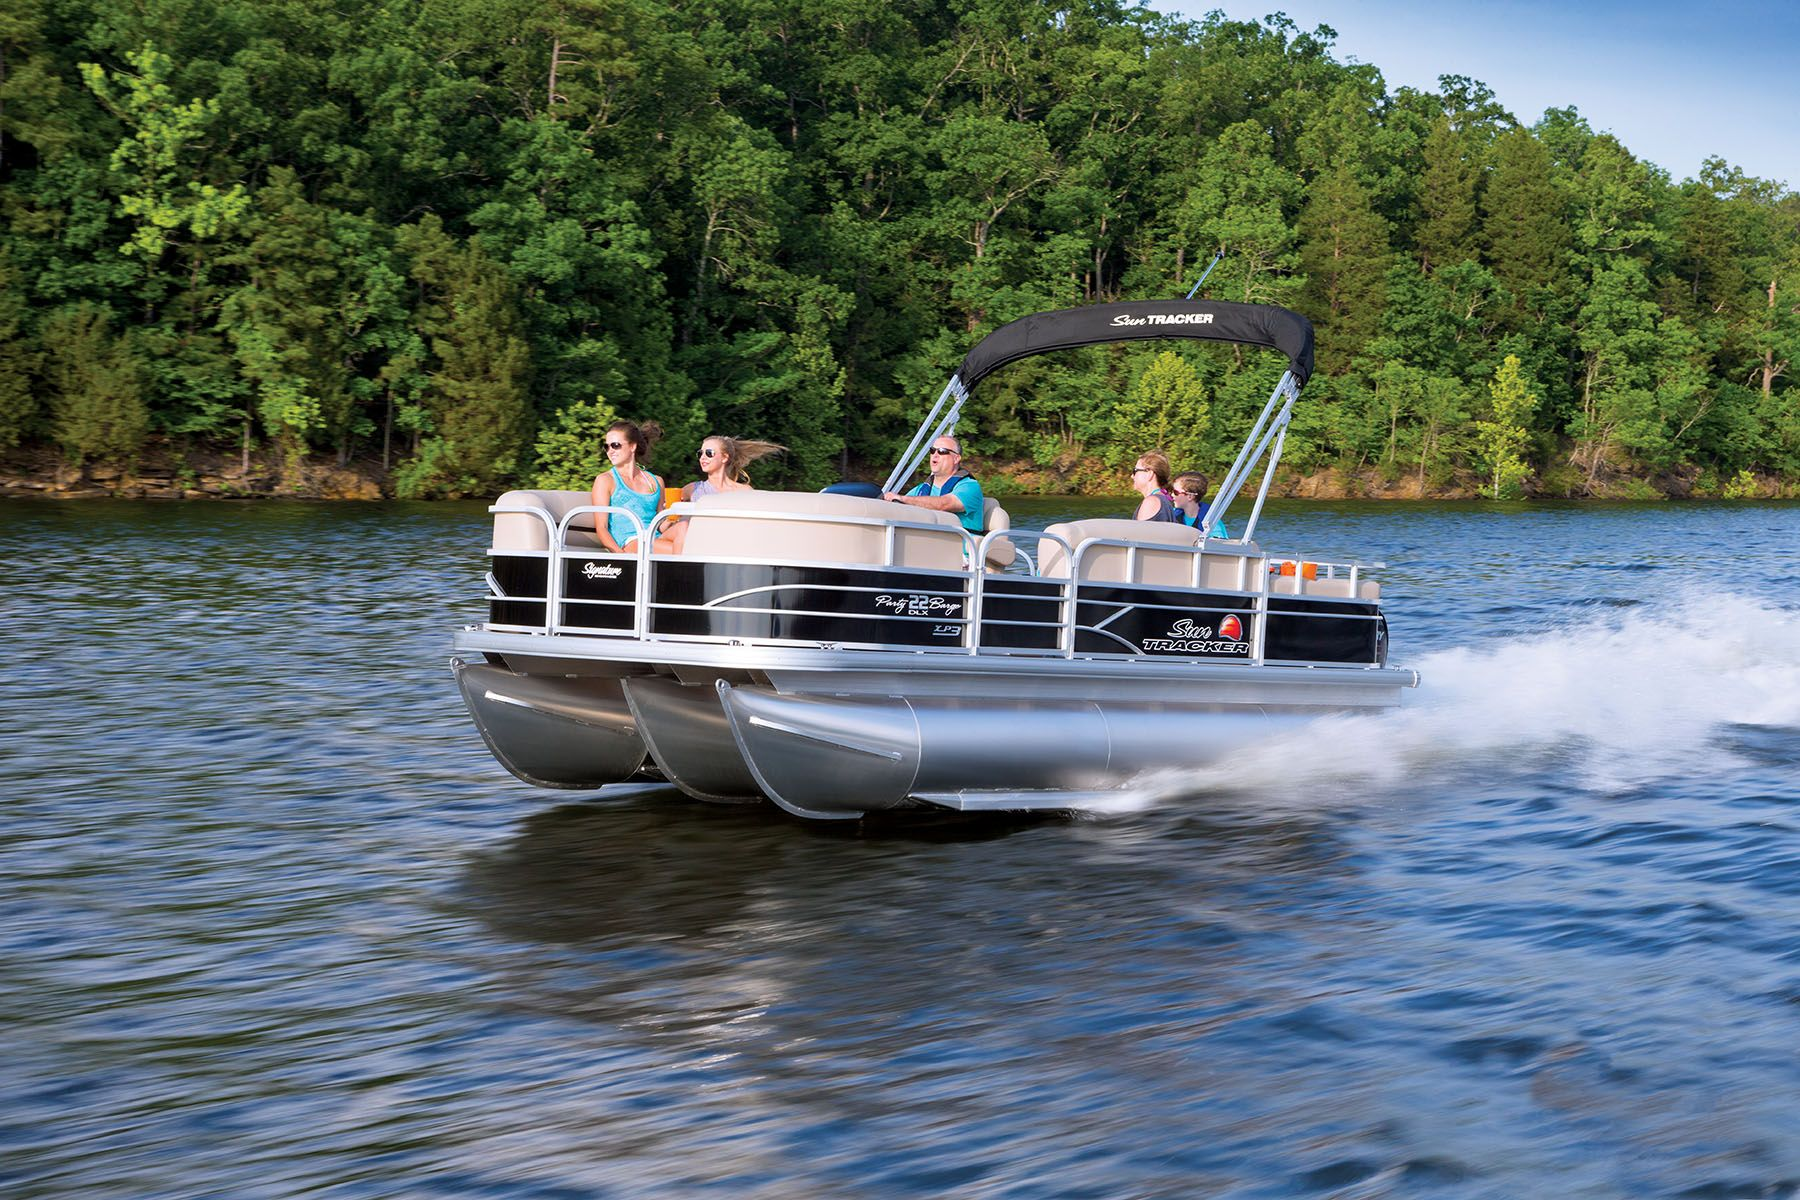 Party Barge 22 Xp3 Available Through Springfield Tracker